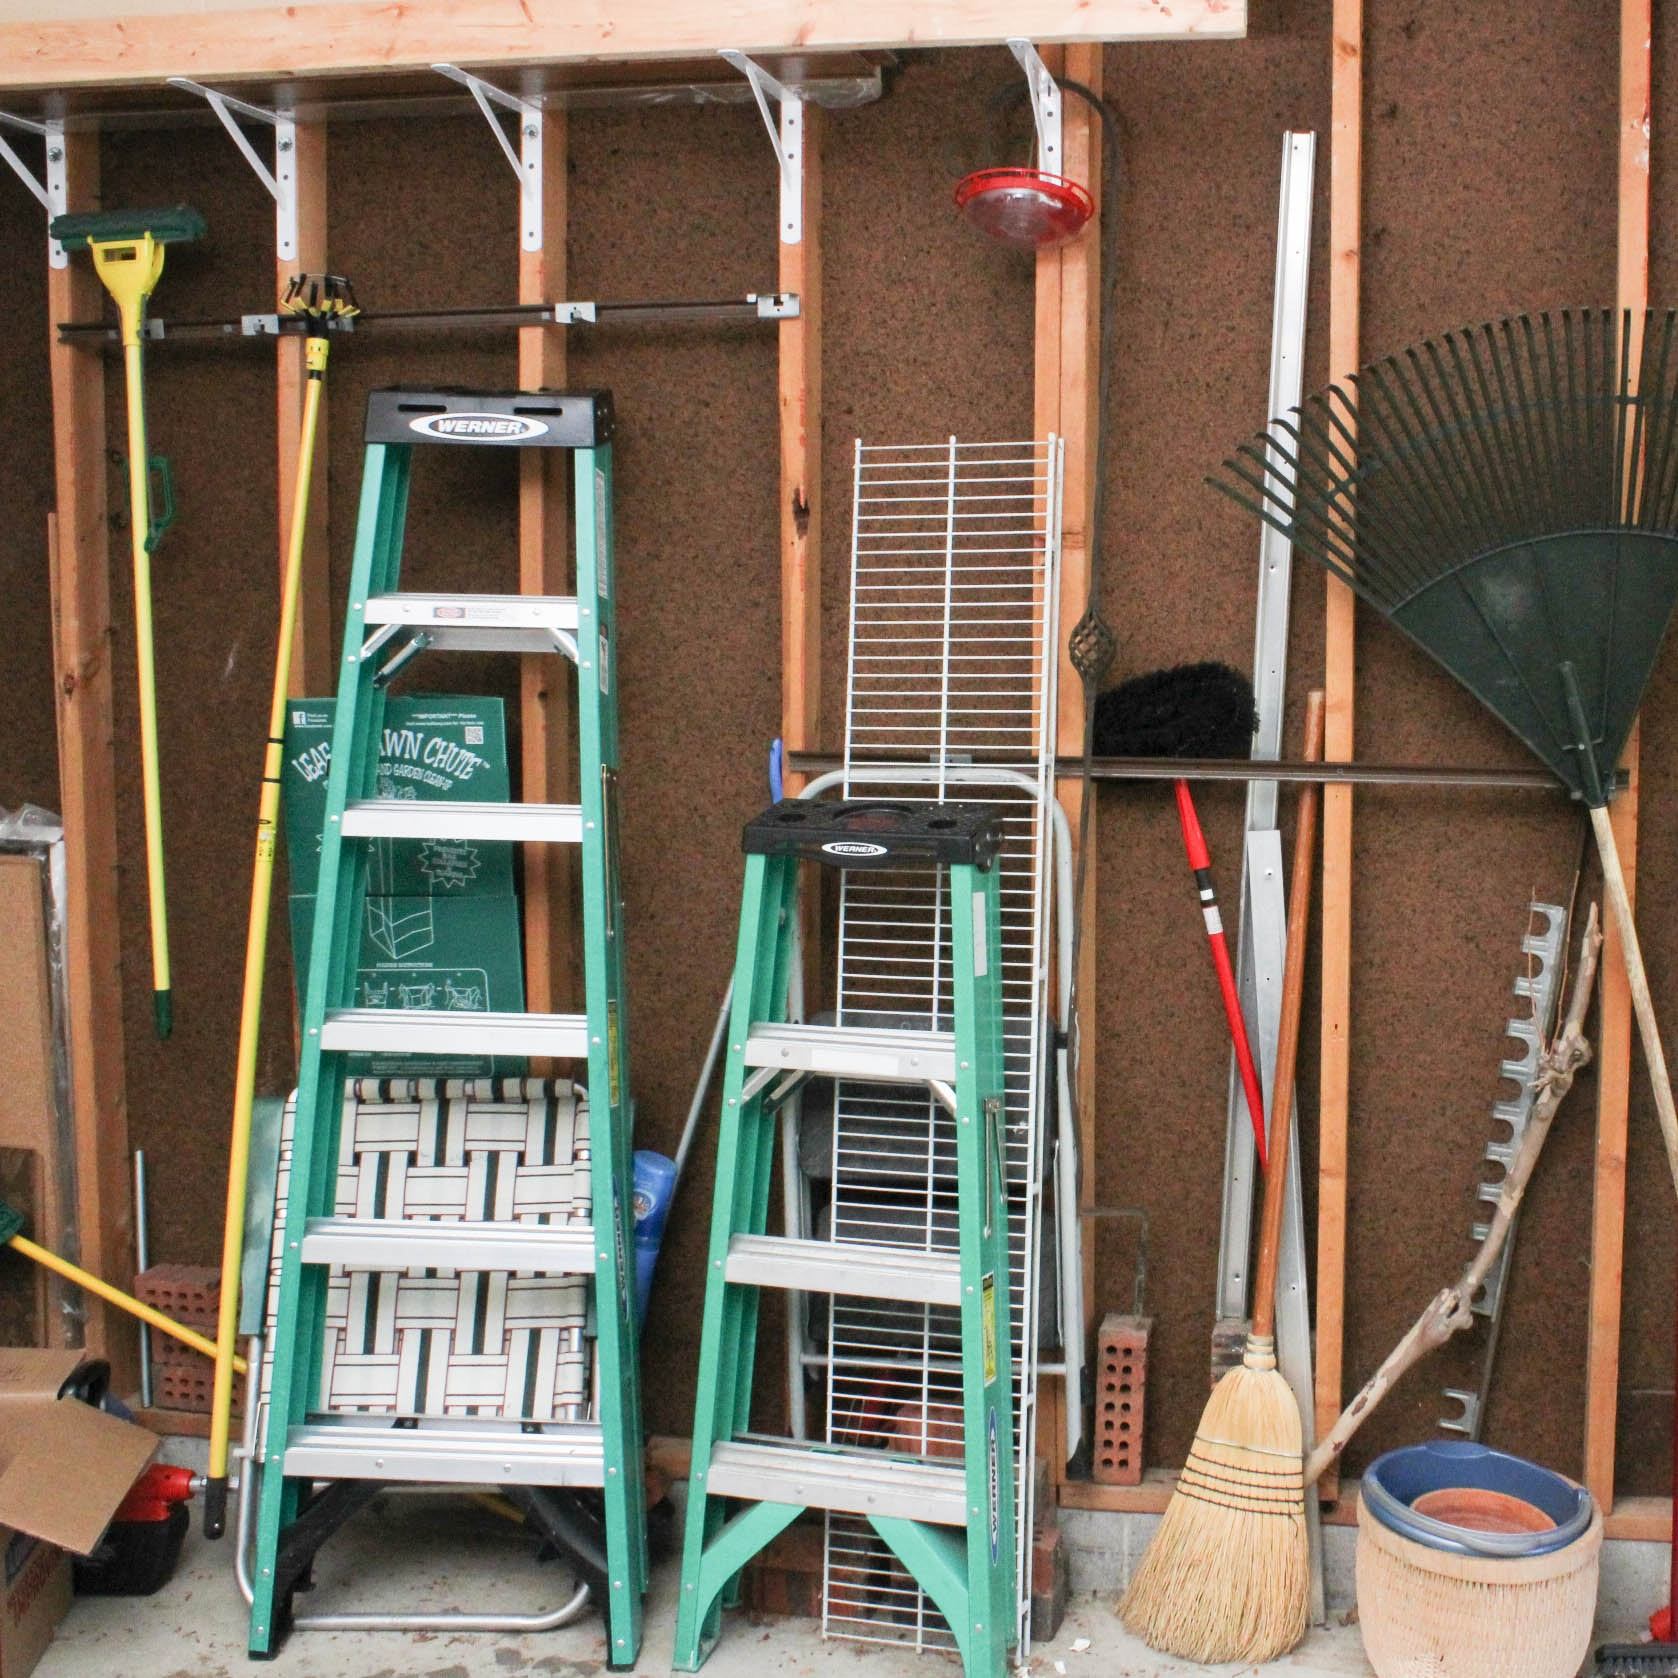 Collection of Yard Tools Featuring Werner Ladders